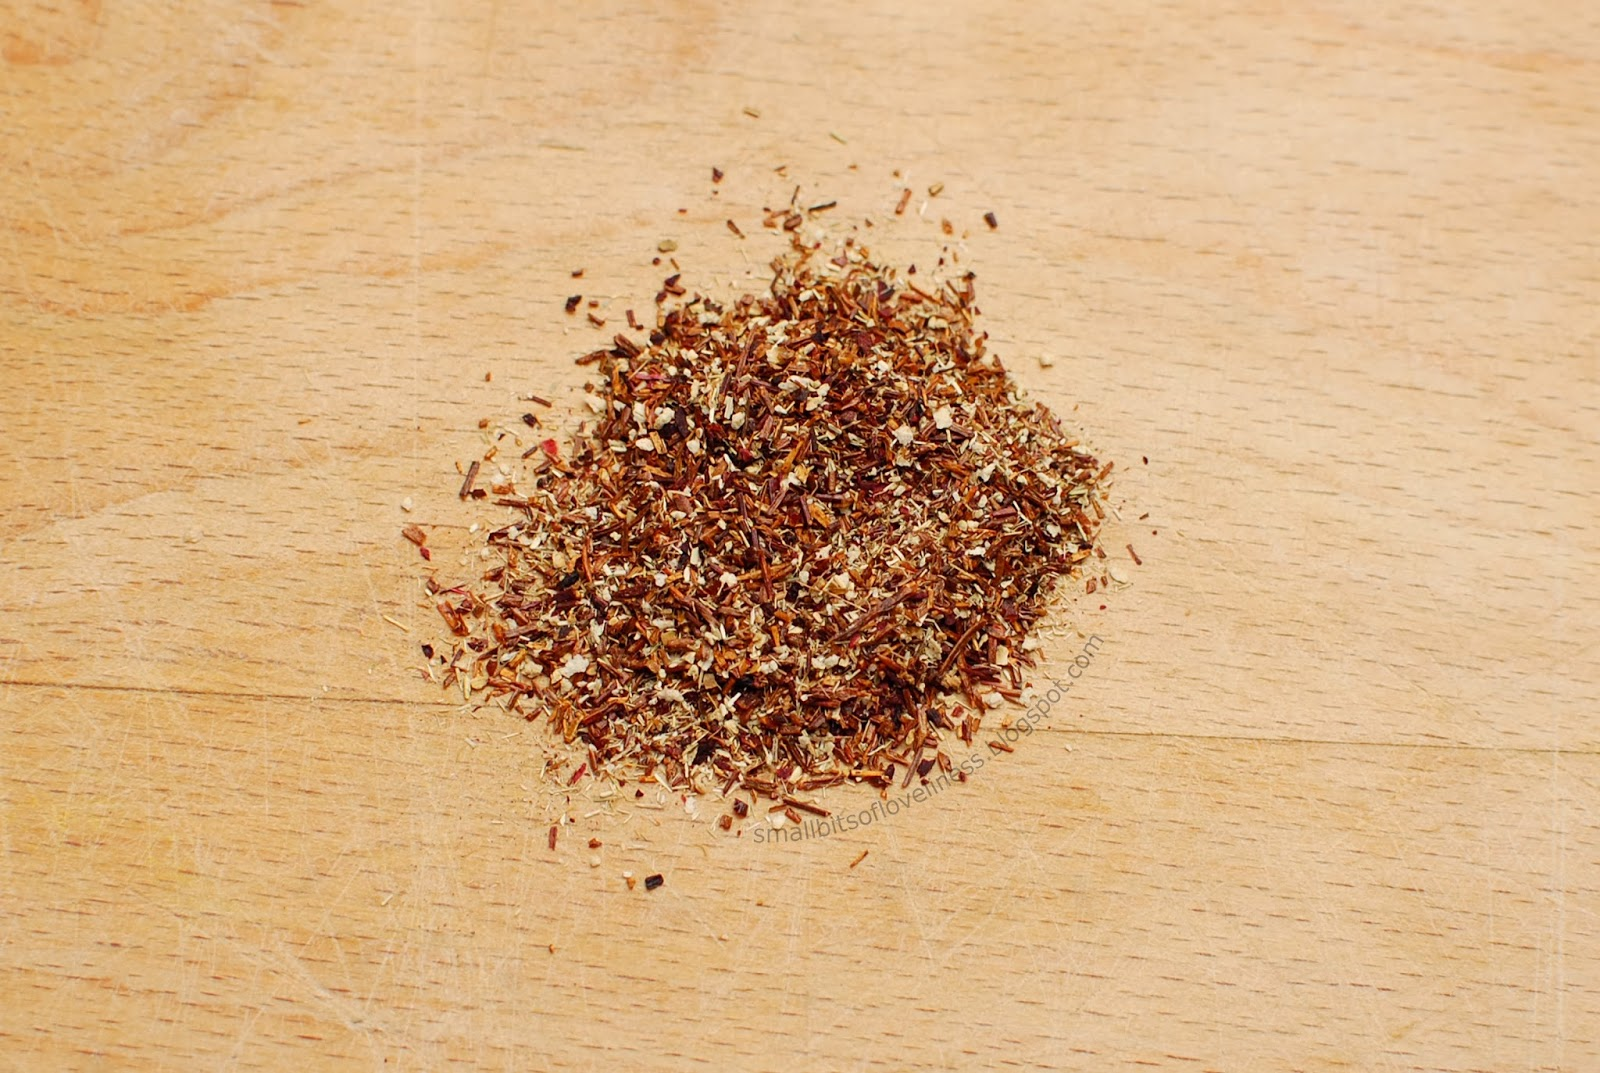 Zhena's Rooibos blended with Acai berry and Citrus